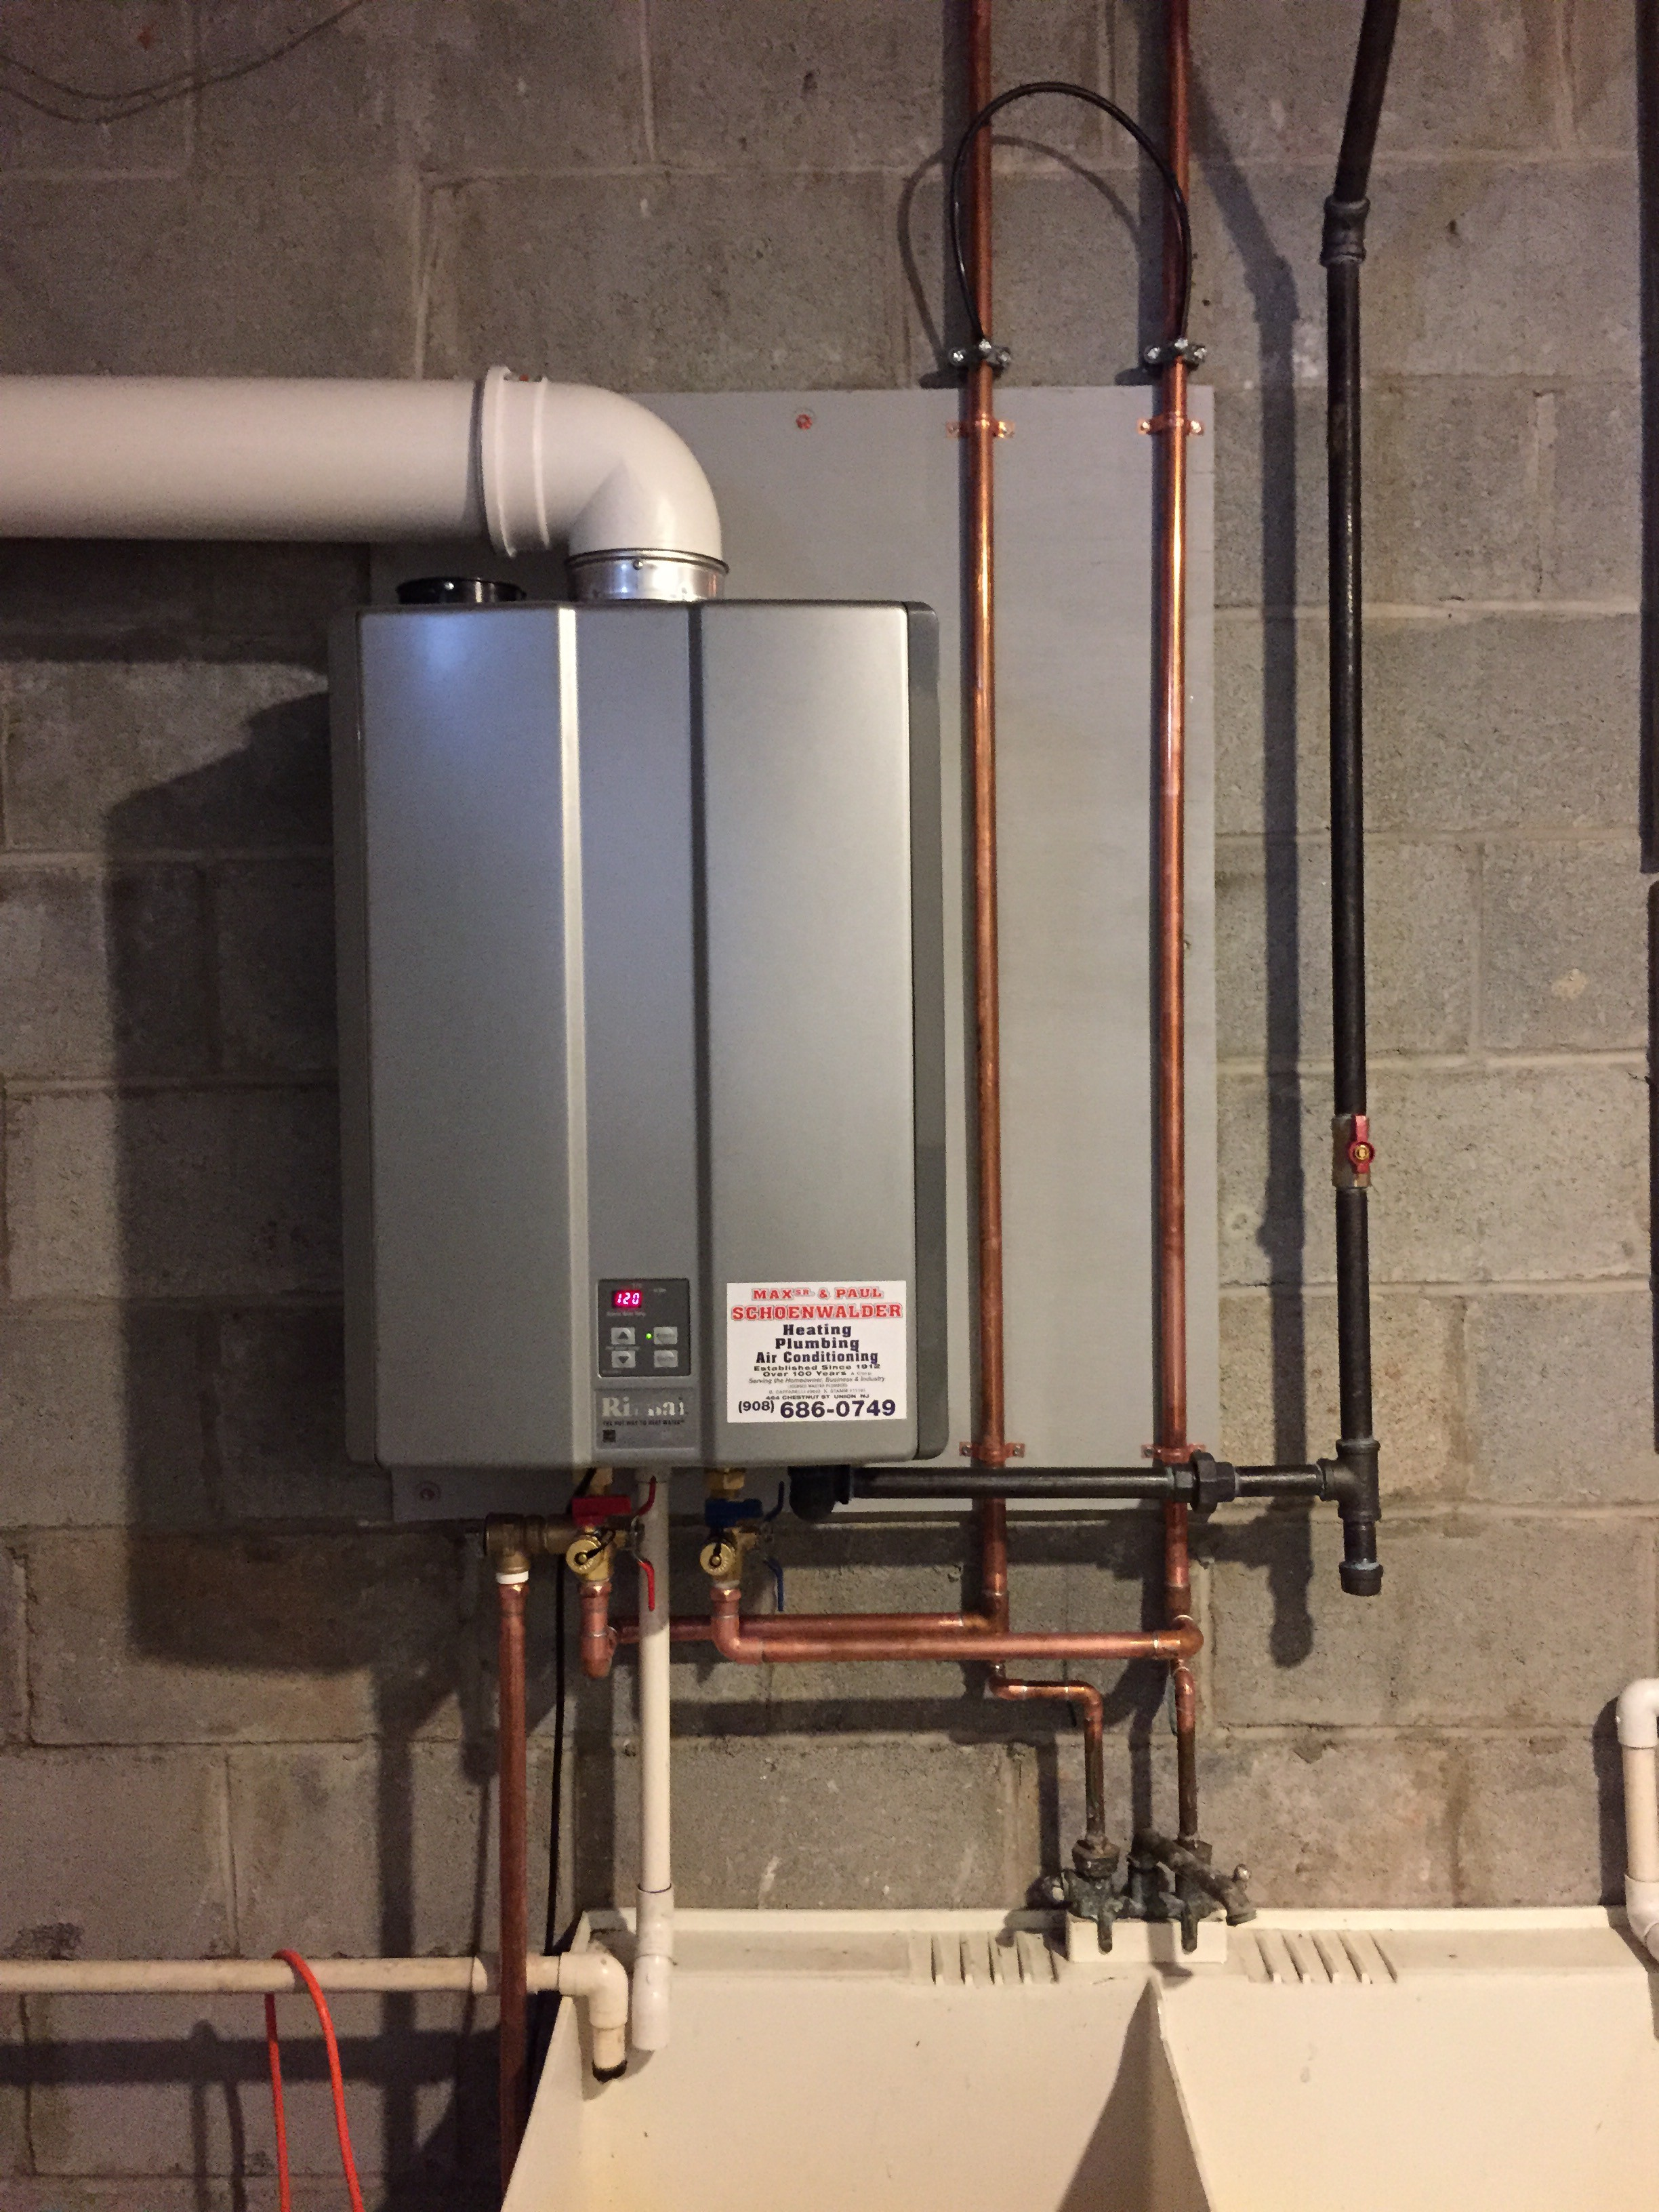 On demand/tankless water heater